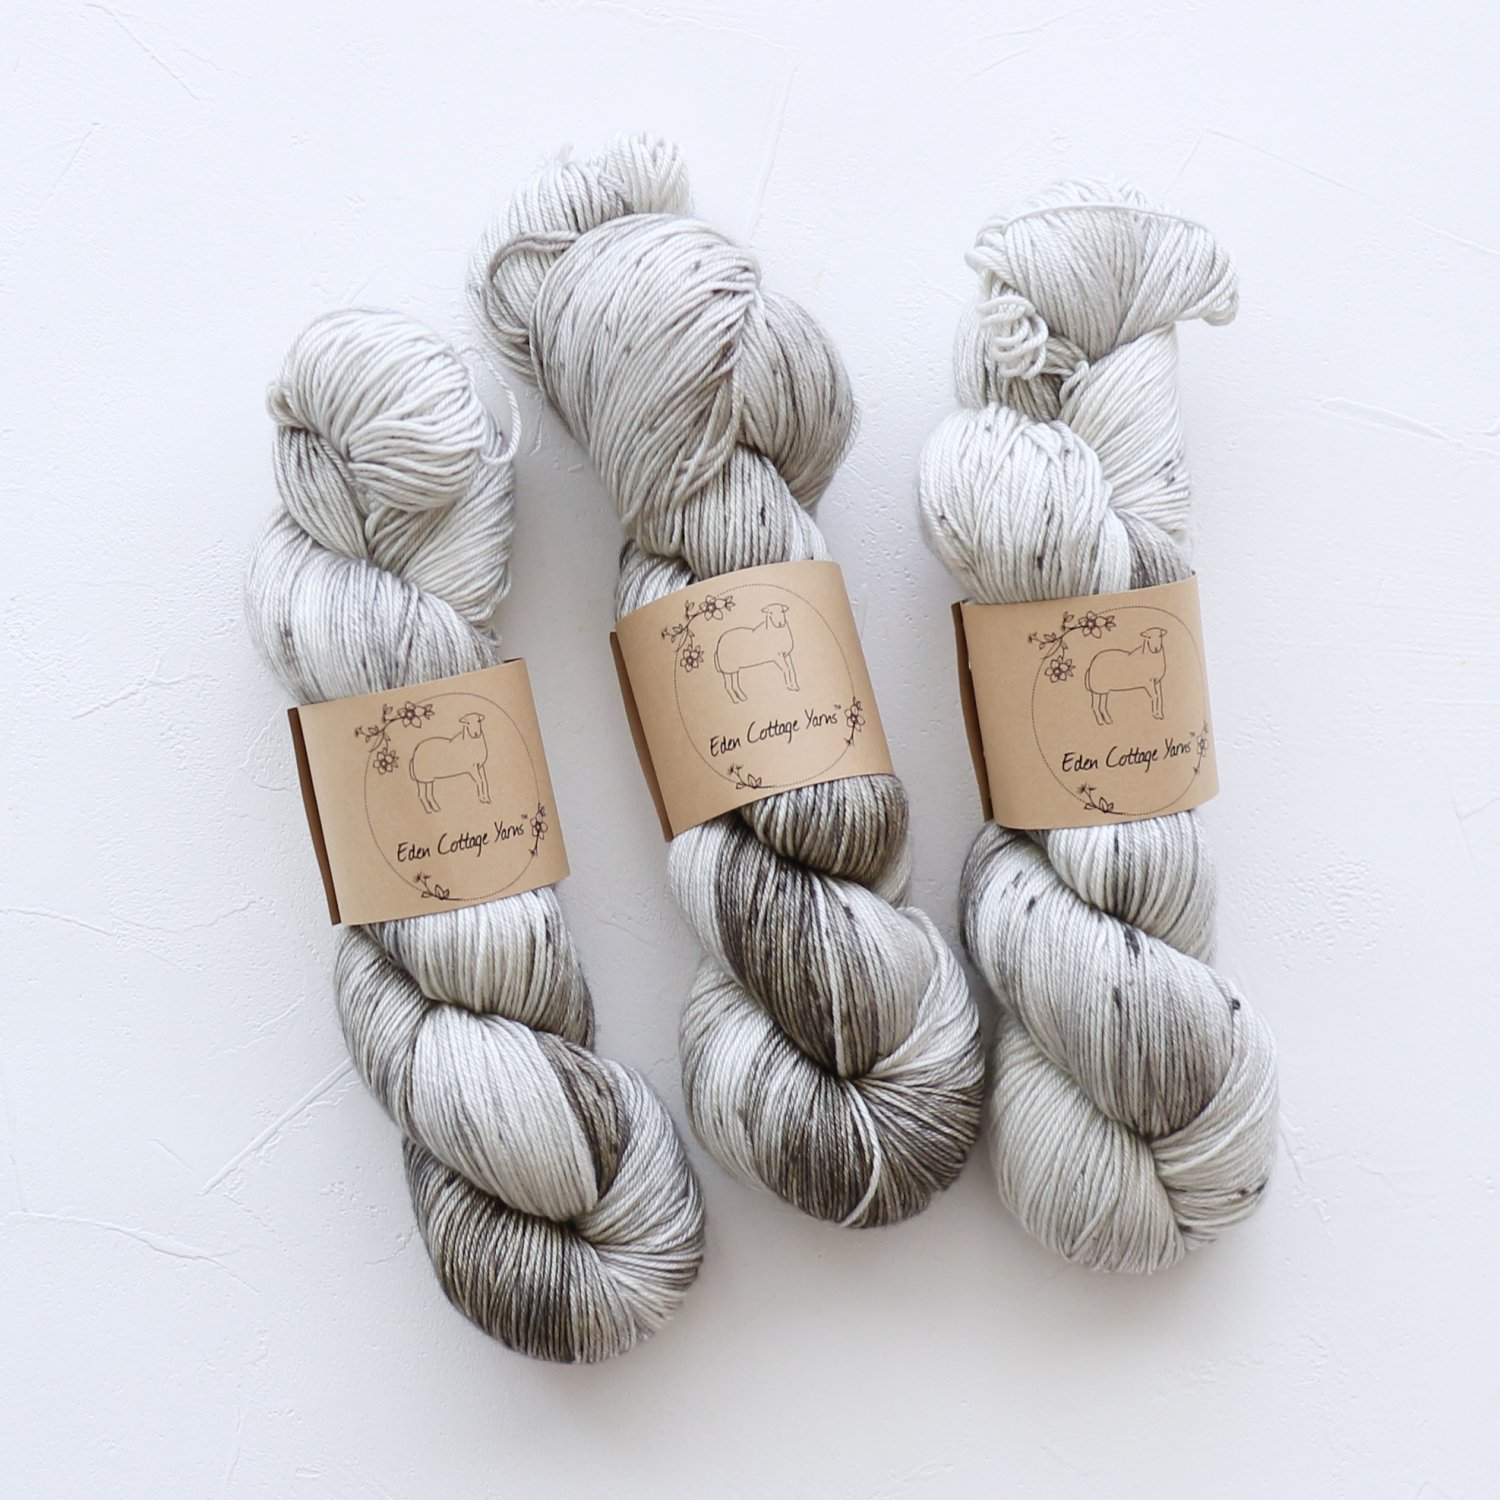 【Eden Cottage Yarns】<br>Titus 4ply<br>Dry Stone Wall